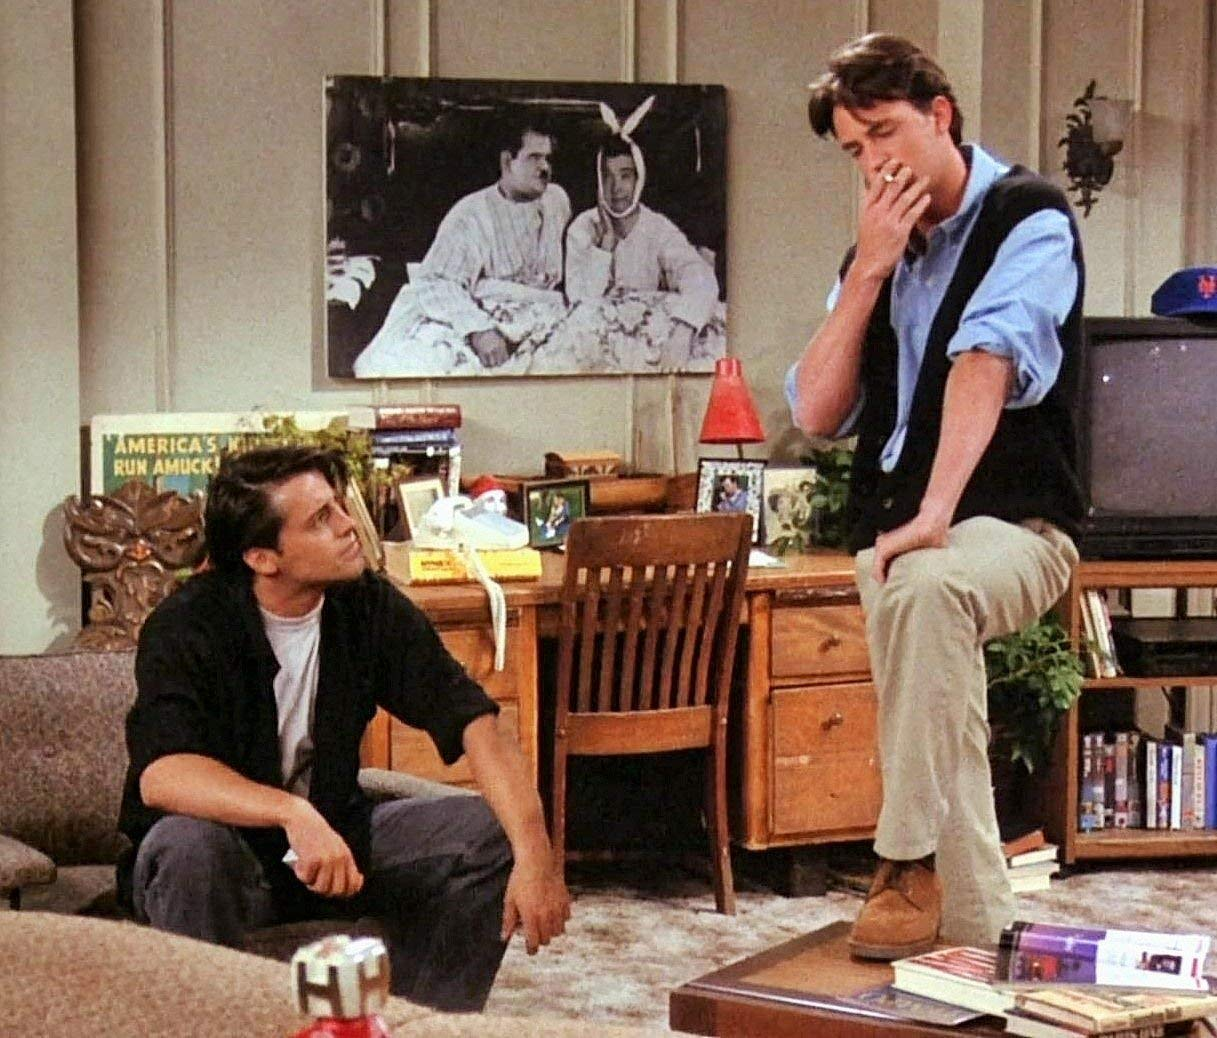 mCasting Friends Poster Friends Show Gifts and Decor Laurel /& Hardy Friends Merchandise TV Show Poster- Joey and Chandler Posters